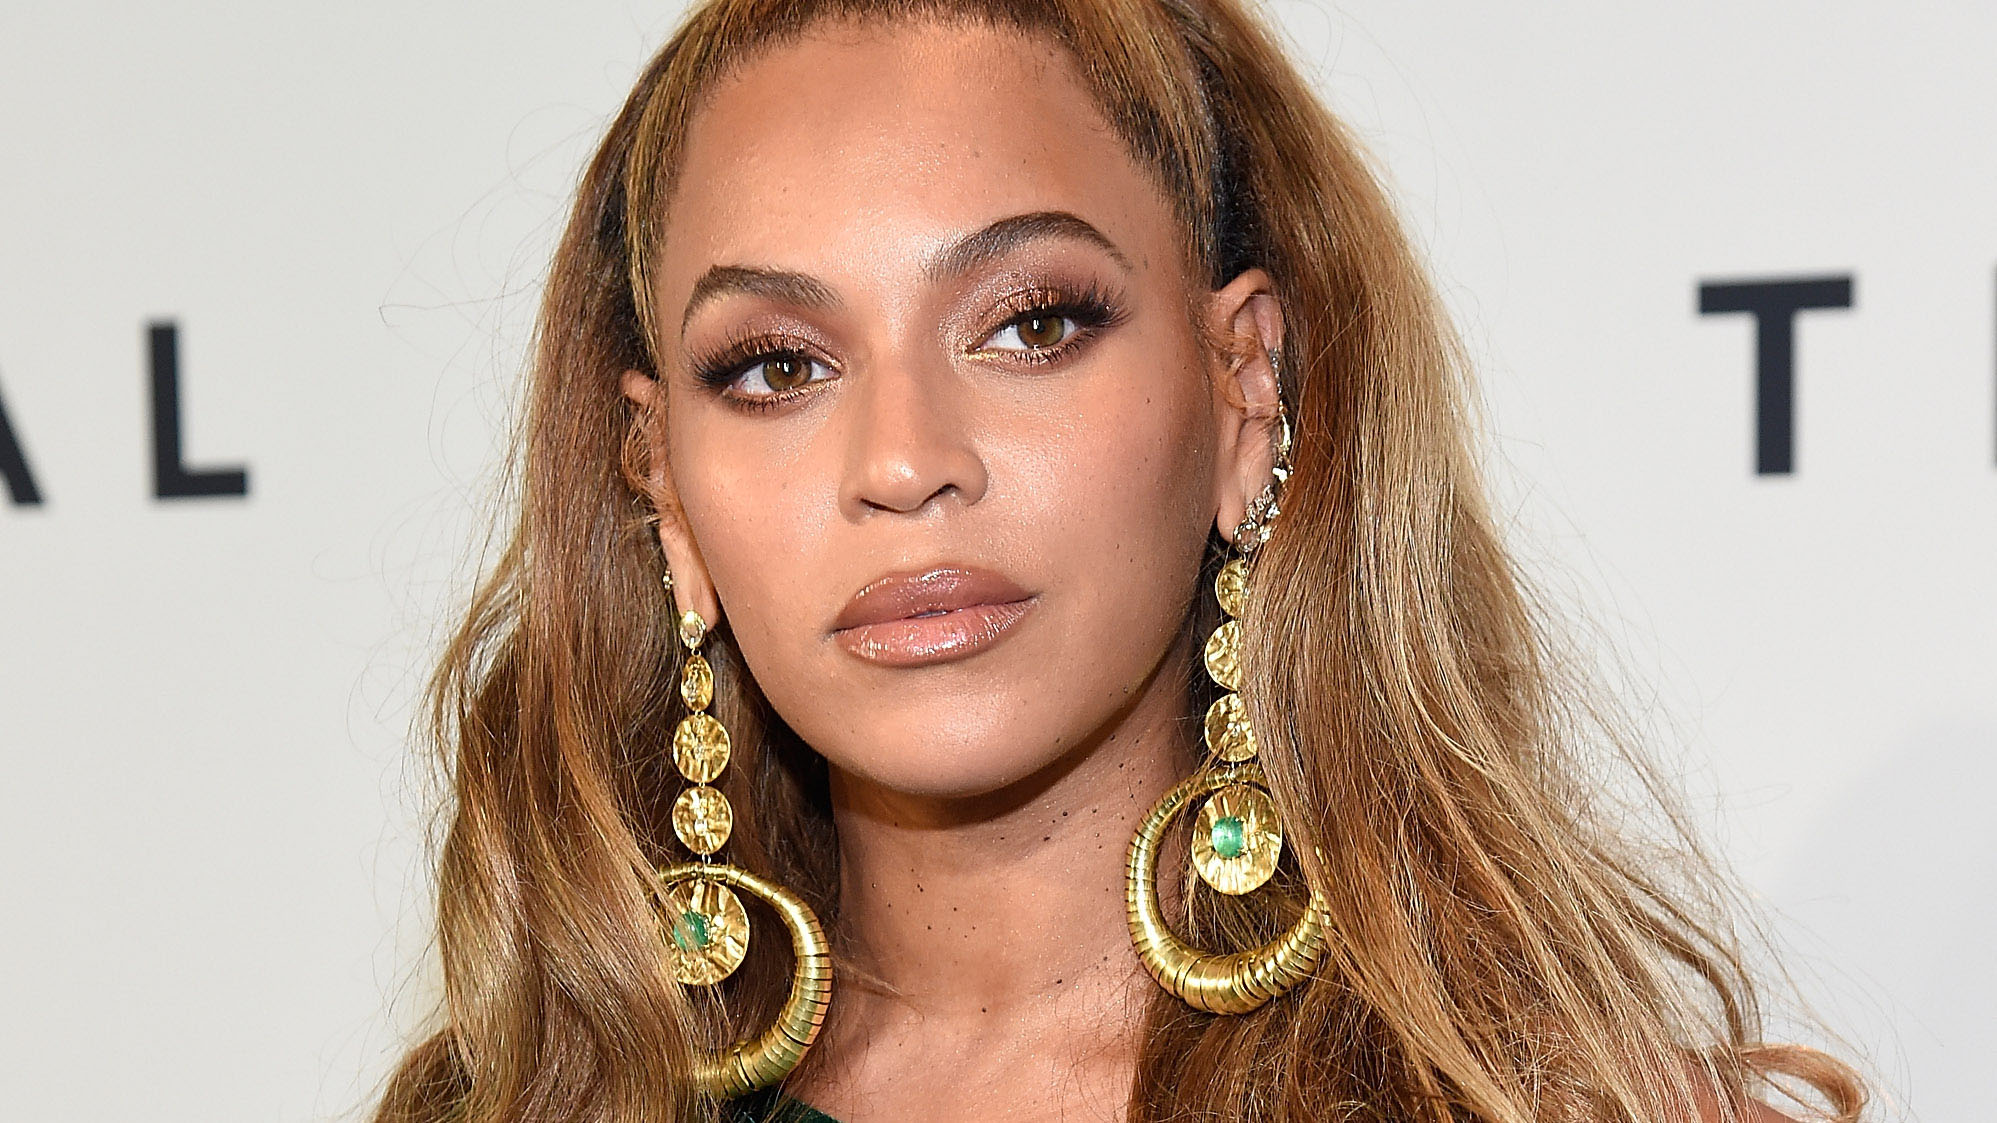 Beyoncé Knowles-Carter attends an event in Brooklyn, New York, on October 17, 2017.